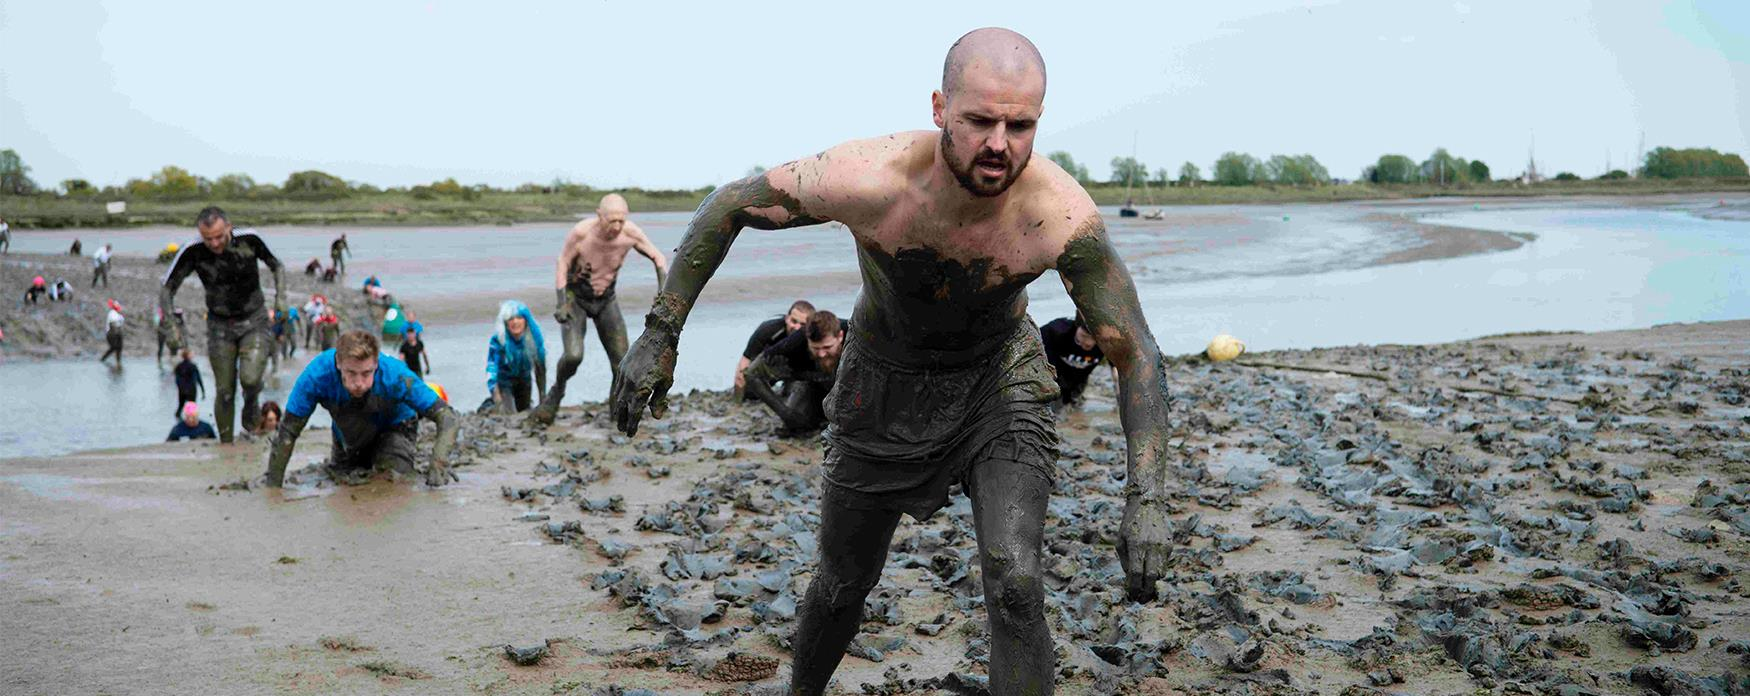 Participants wading through the mud